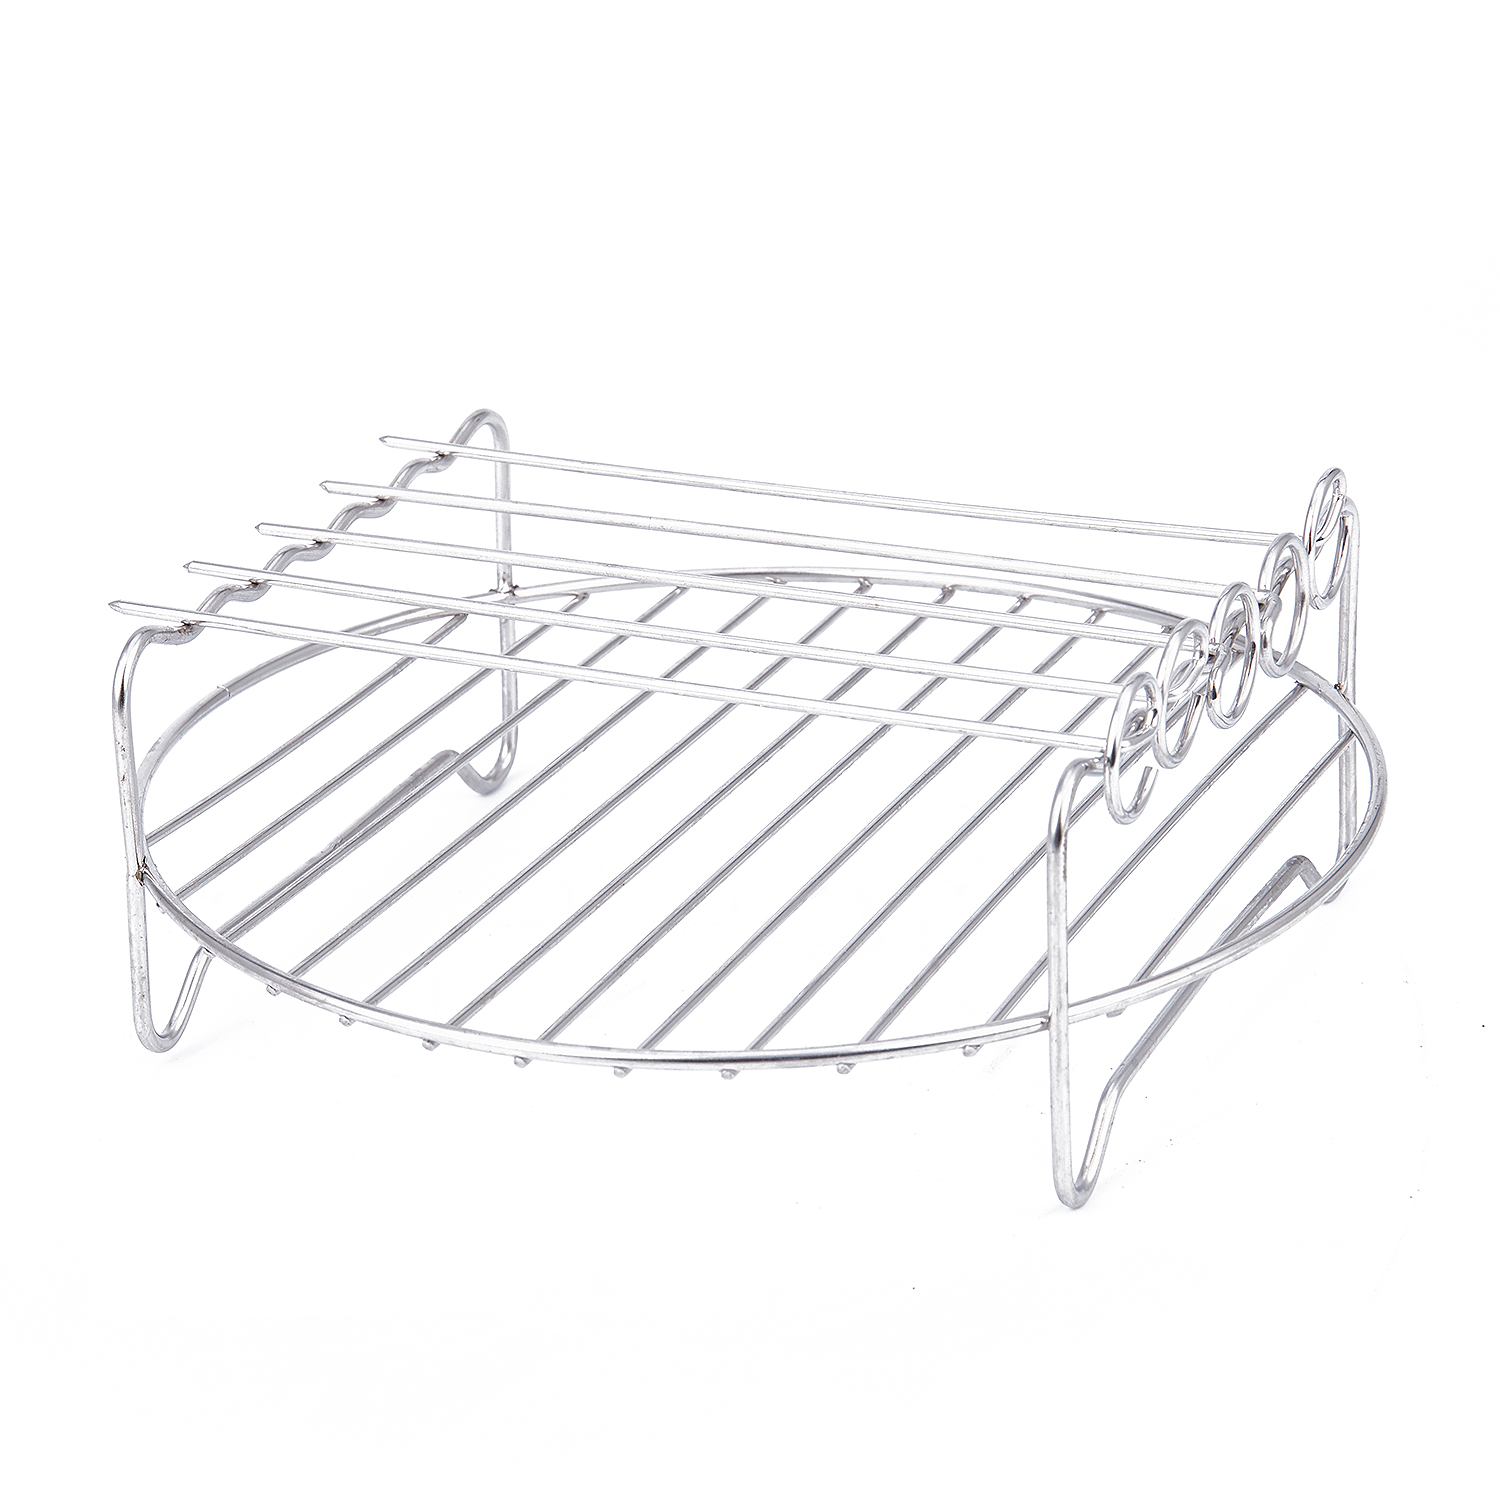 Top Sale Double Layer Rack Accessory With 5 Skewers And 1*Baking Frame, For Airfryers